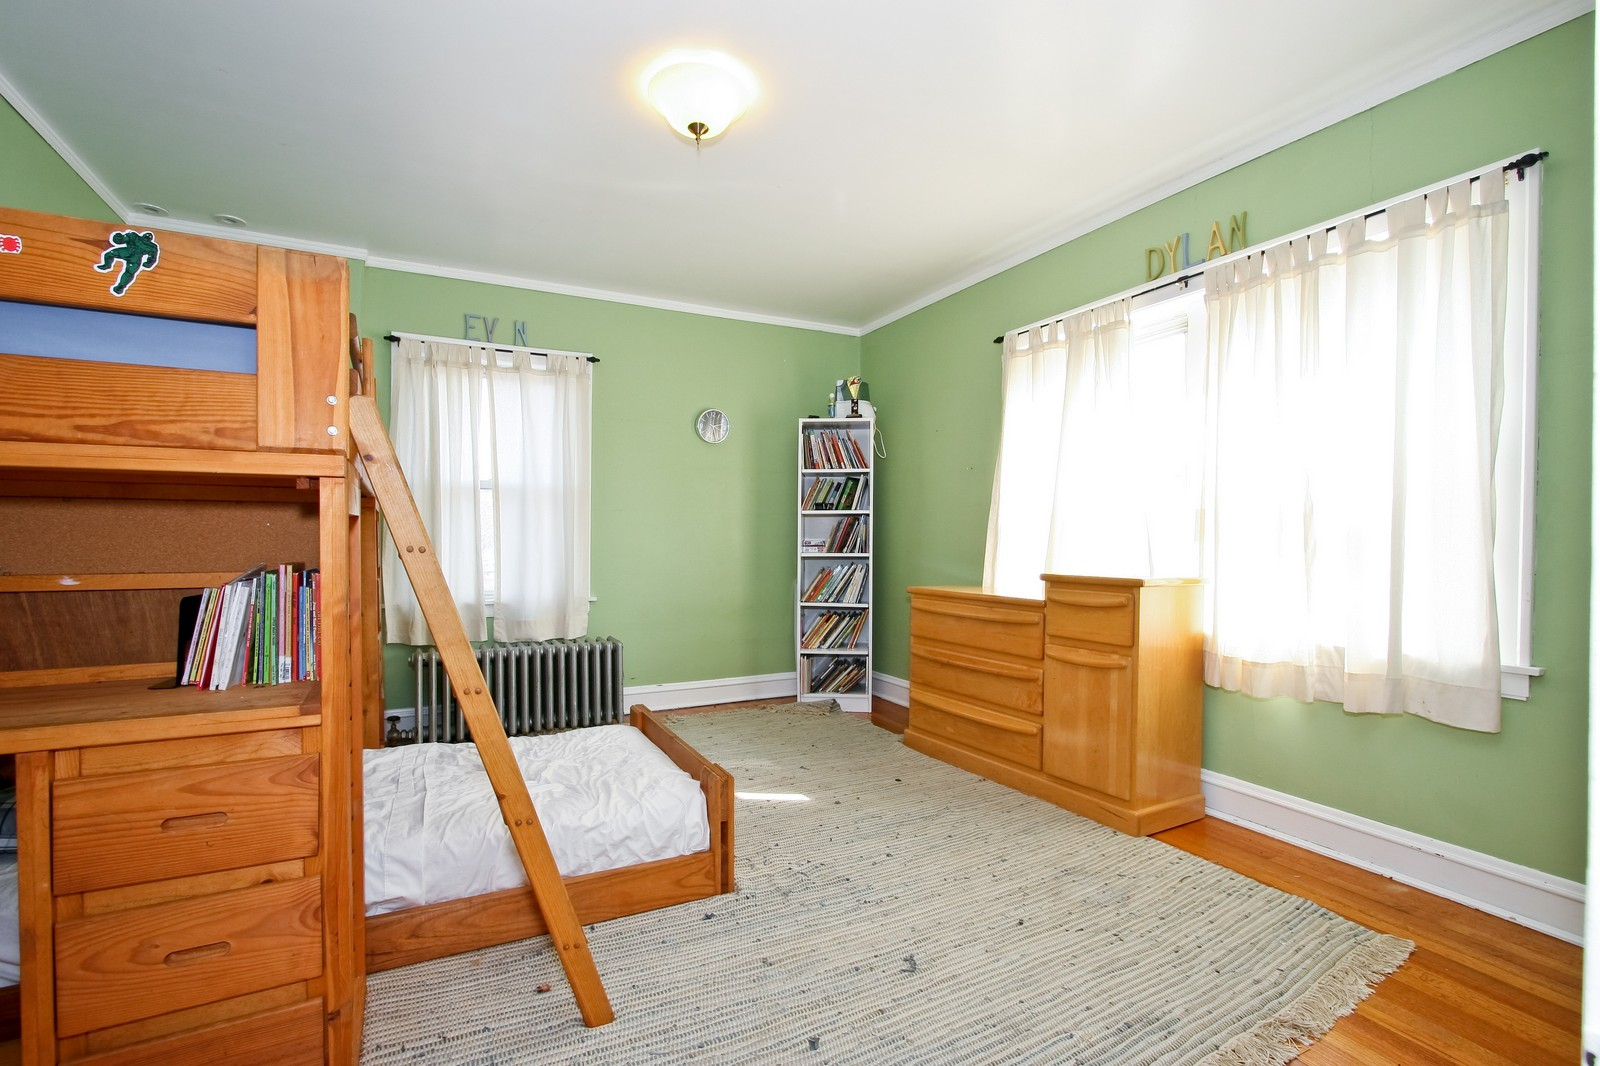 Real Estate Photography - 9001 S. Bell Ave., Chicago, IL, 60643 - 2nd Bedroom